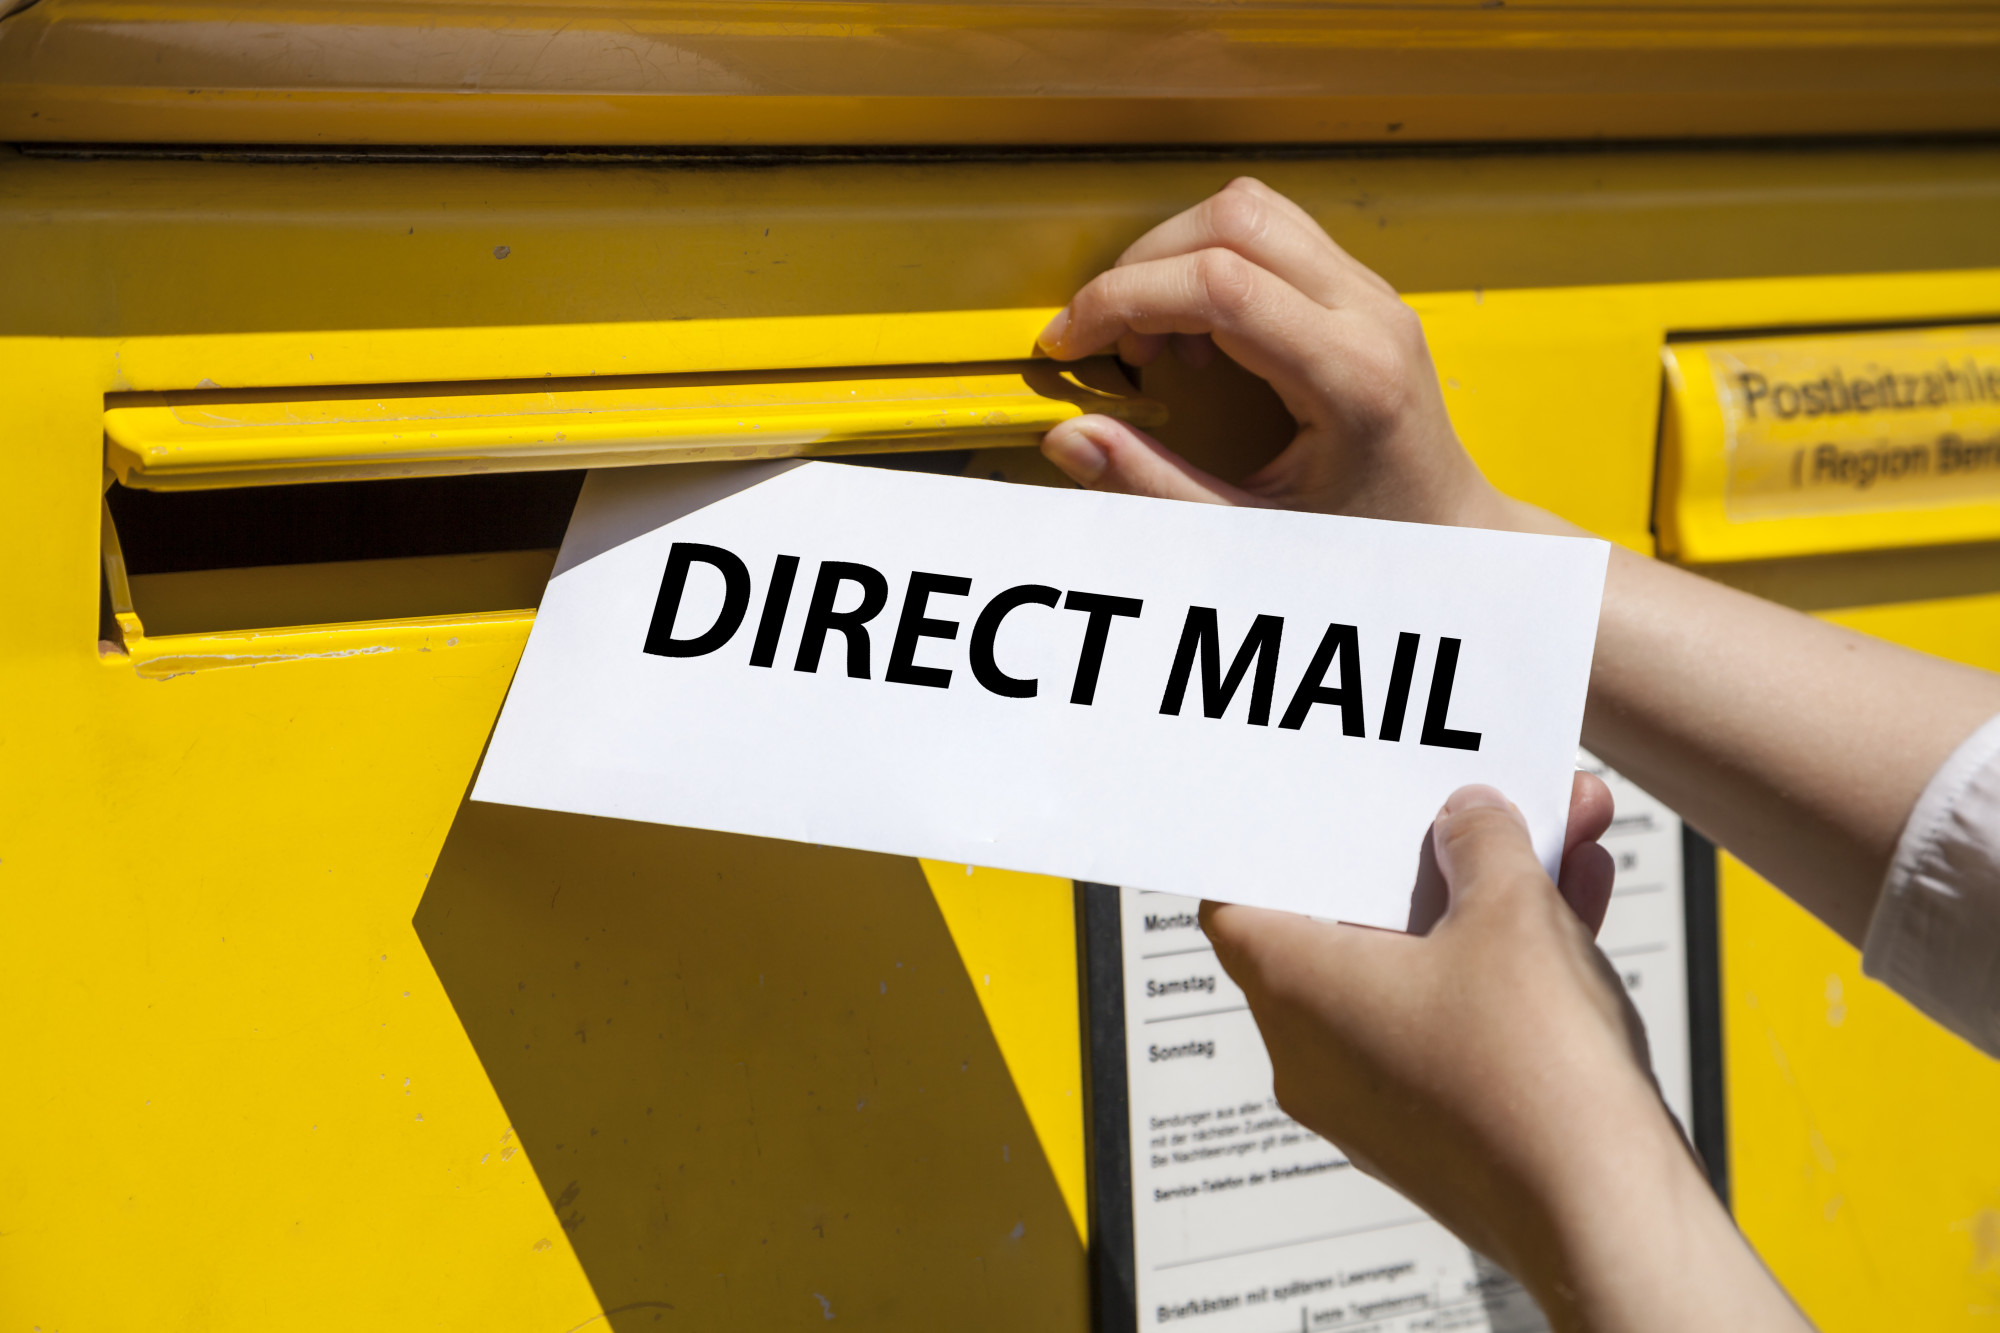 Direct Mail Marketing: Why it is Here to Stay